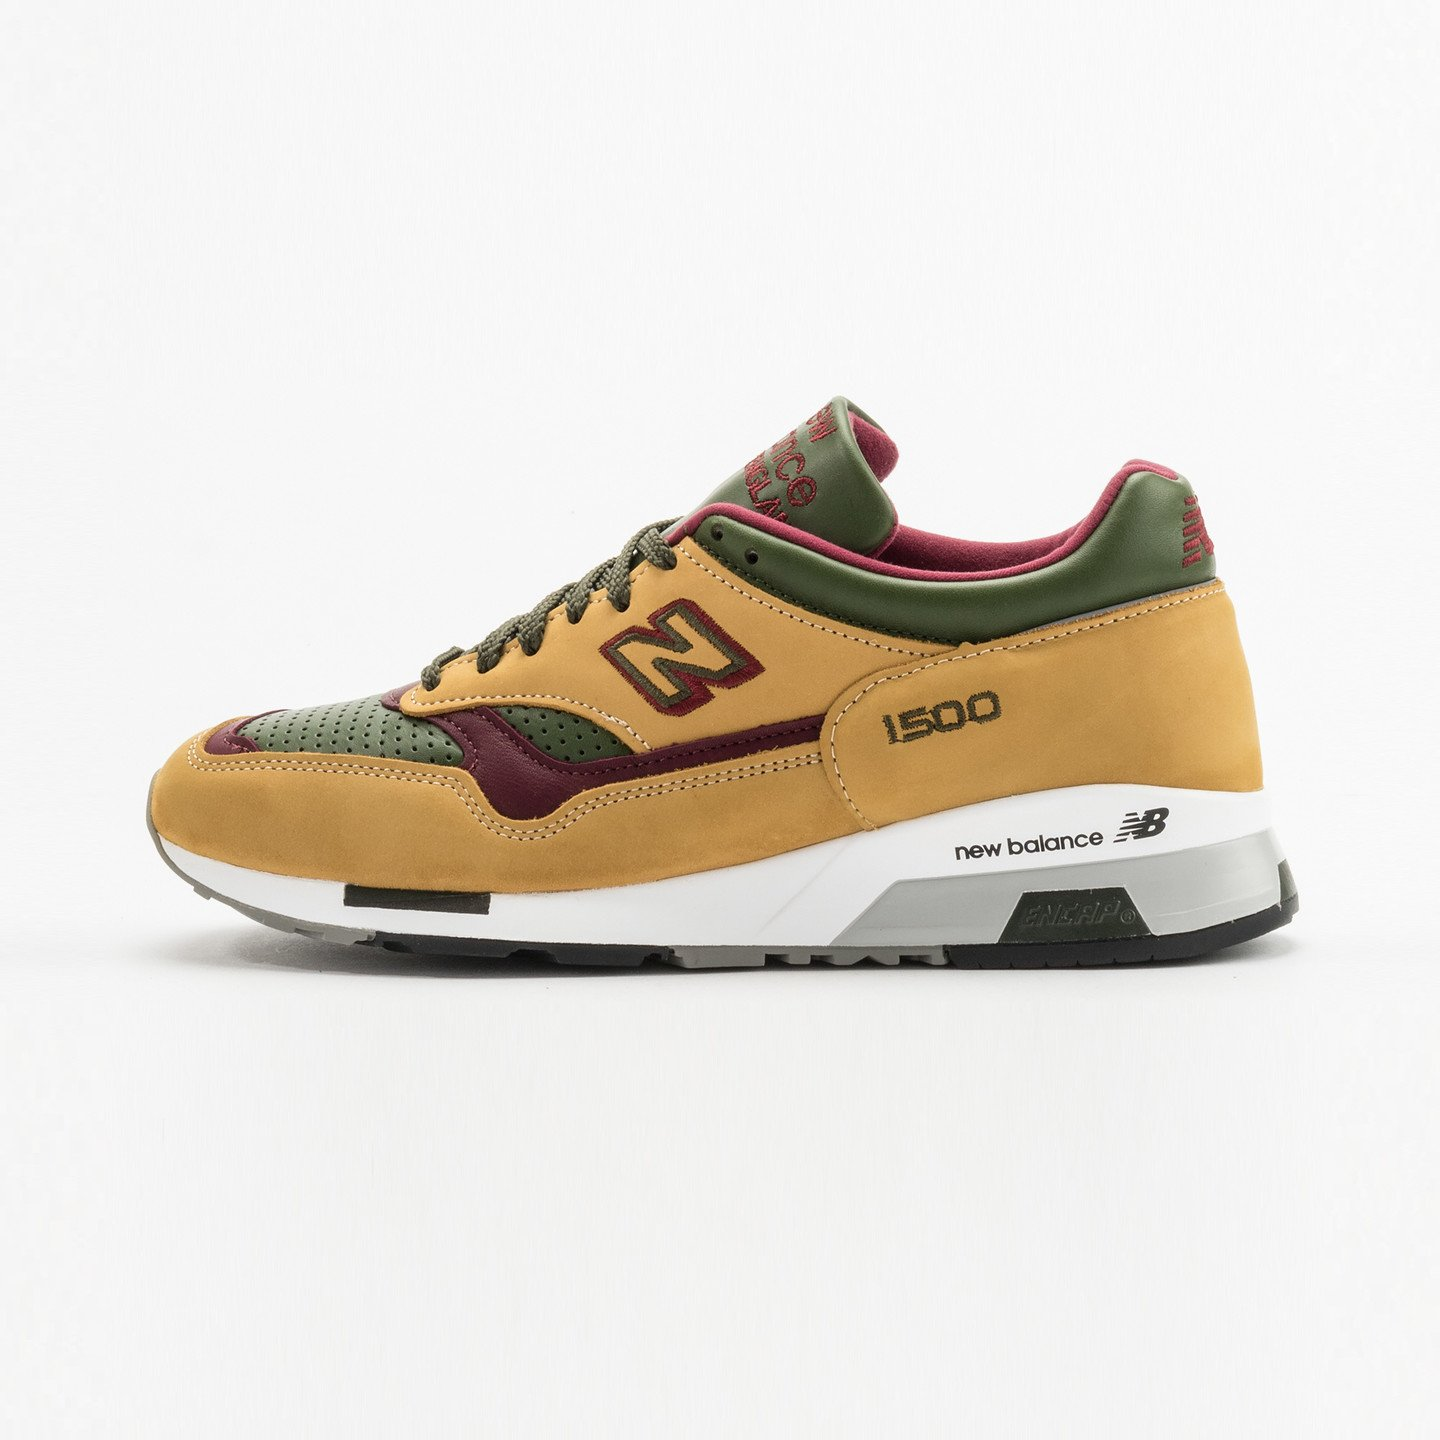 New Balance M1500 TGB - Made in England Mustard / Loden Green M1500TGB